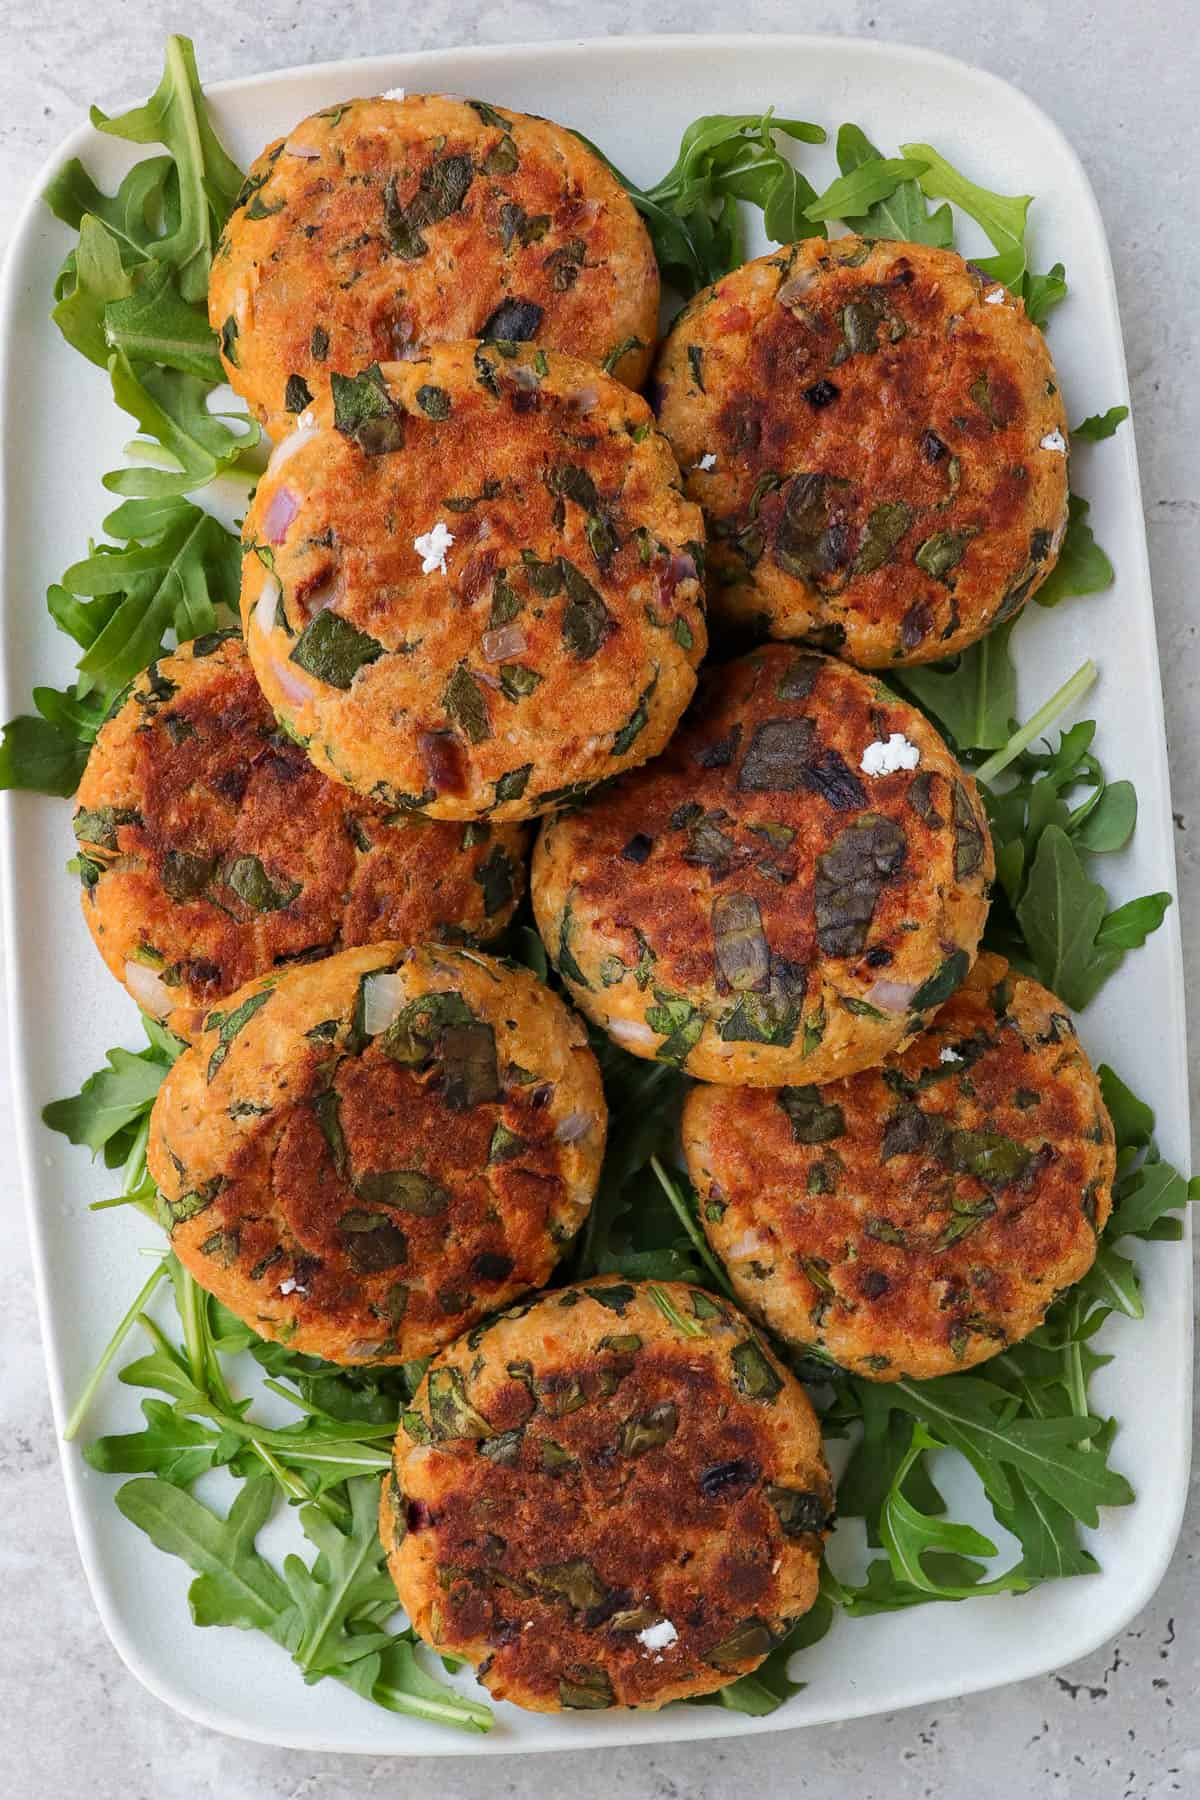 cooked salmon patties on platter with rocket leaves.